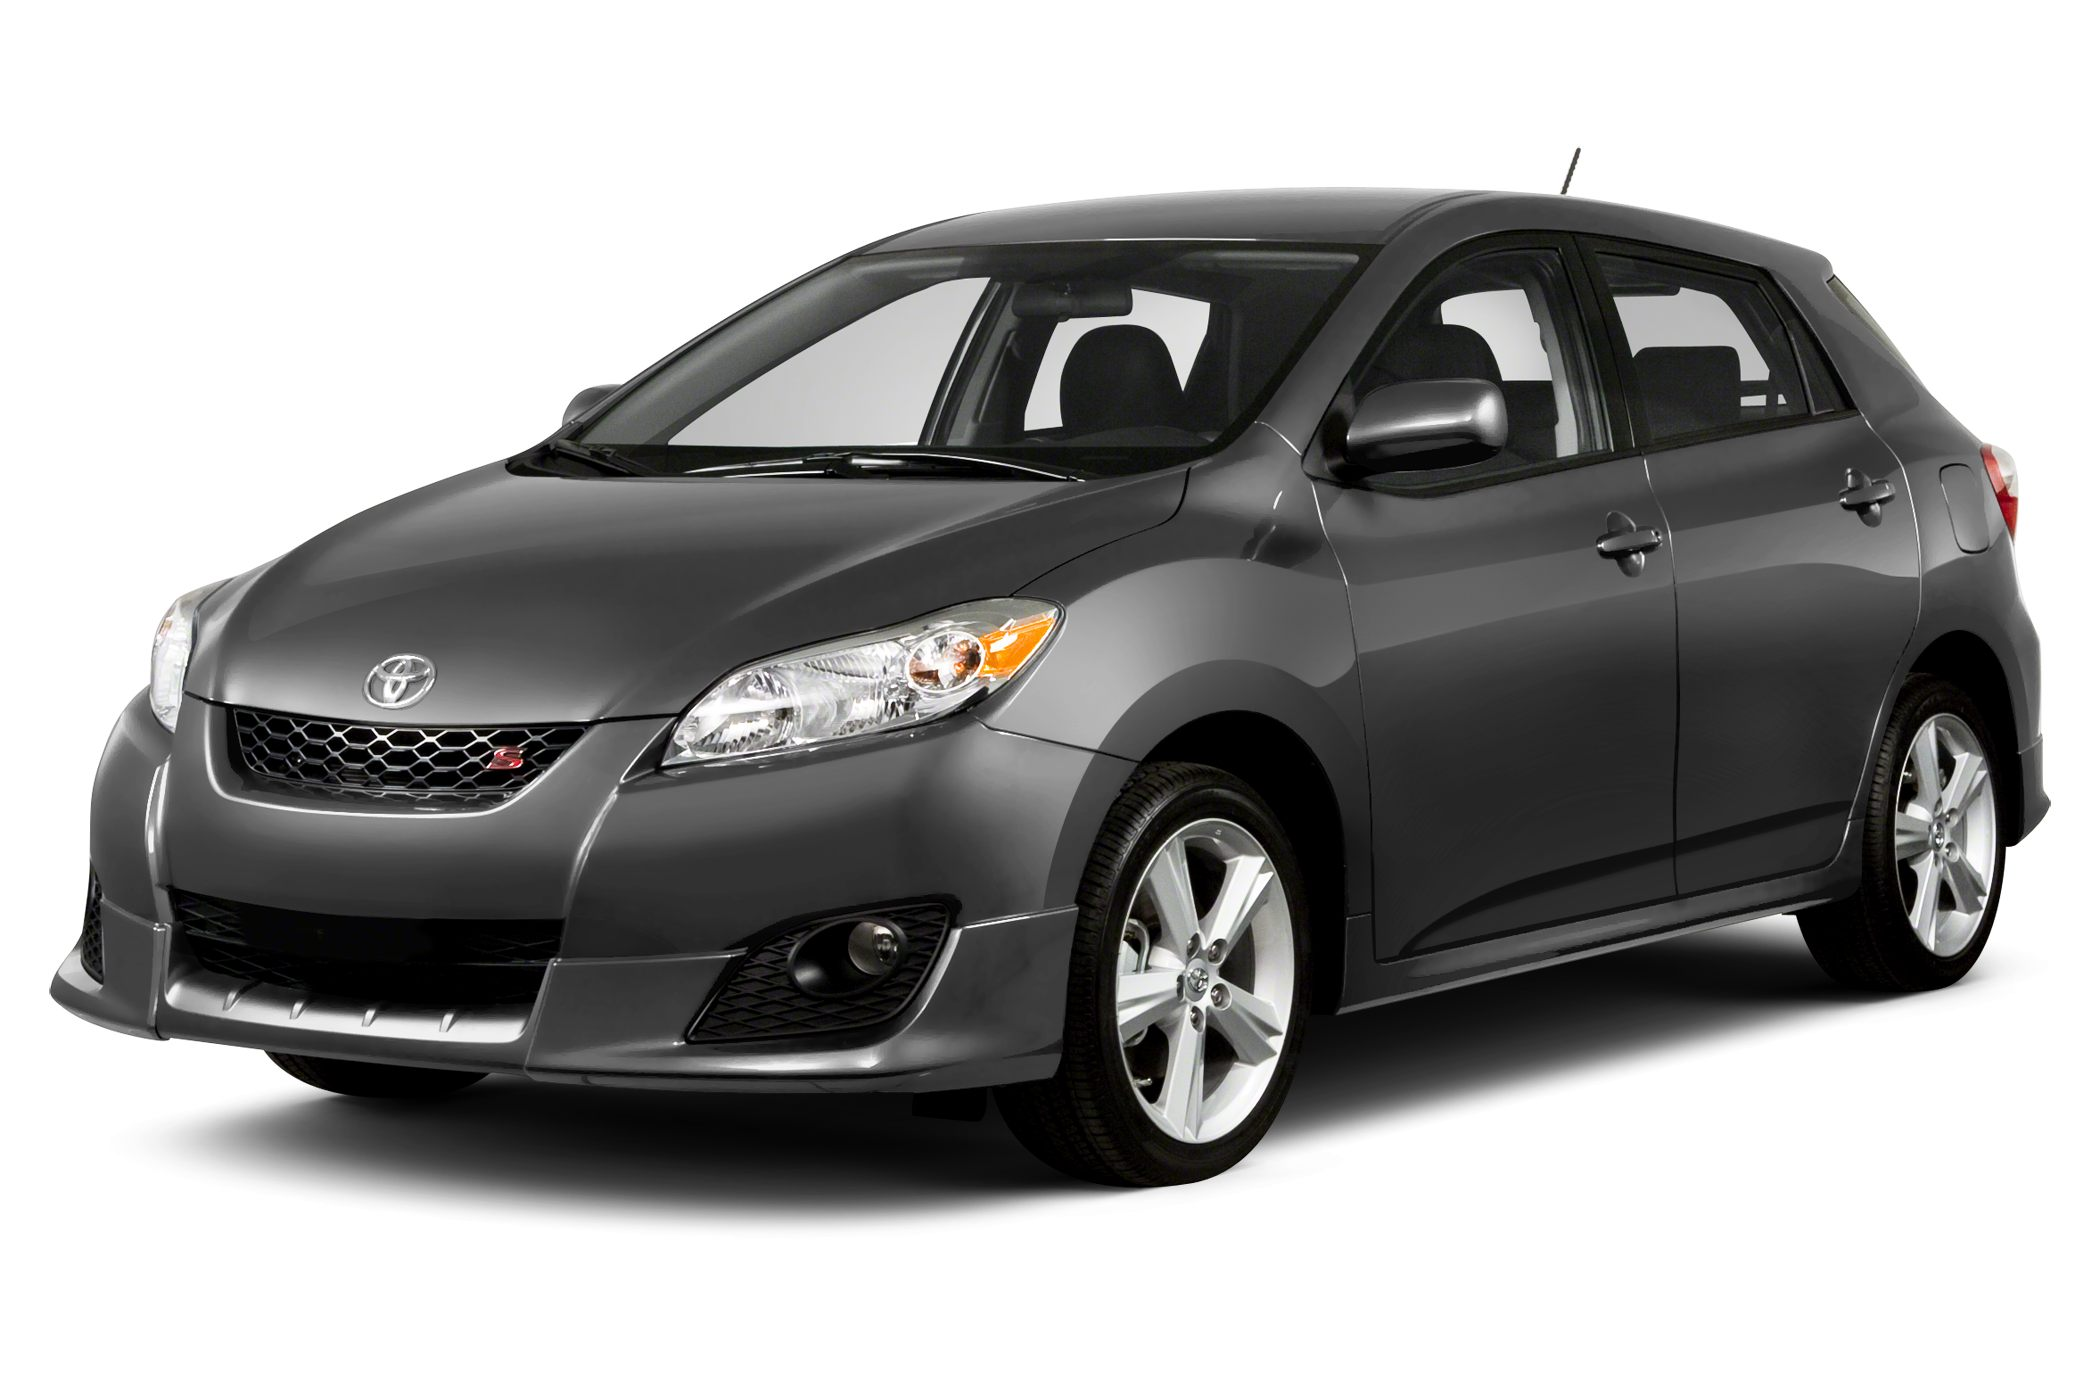 2013 Toyota Matrix L Hatchback for sale in Buffalo for $14,972 with 35,786 miles